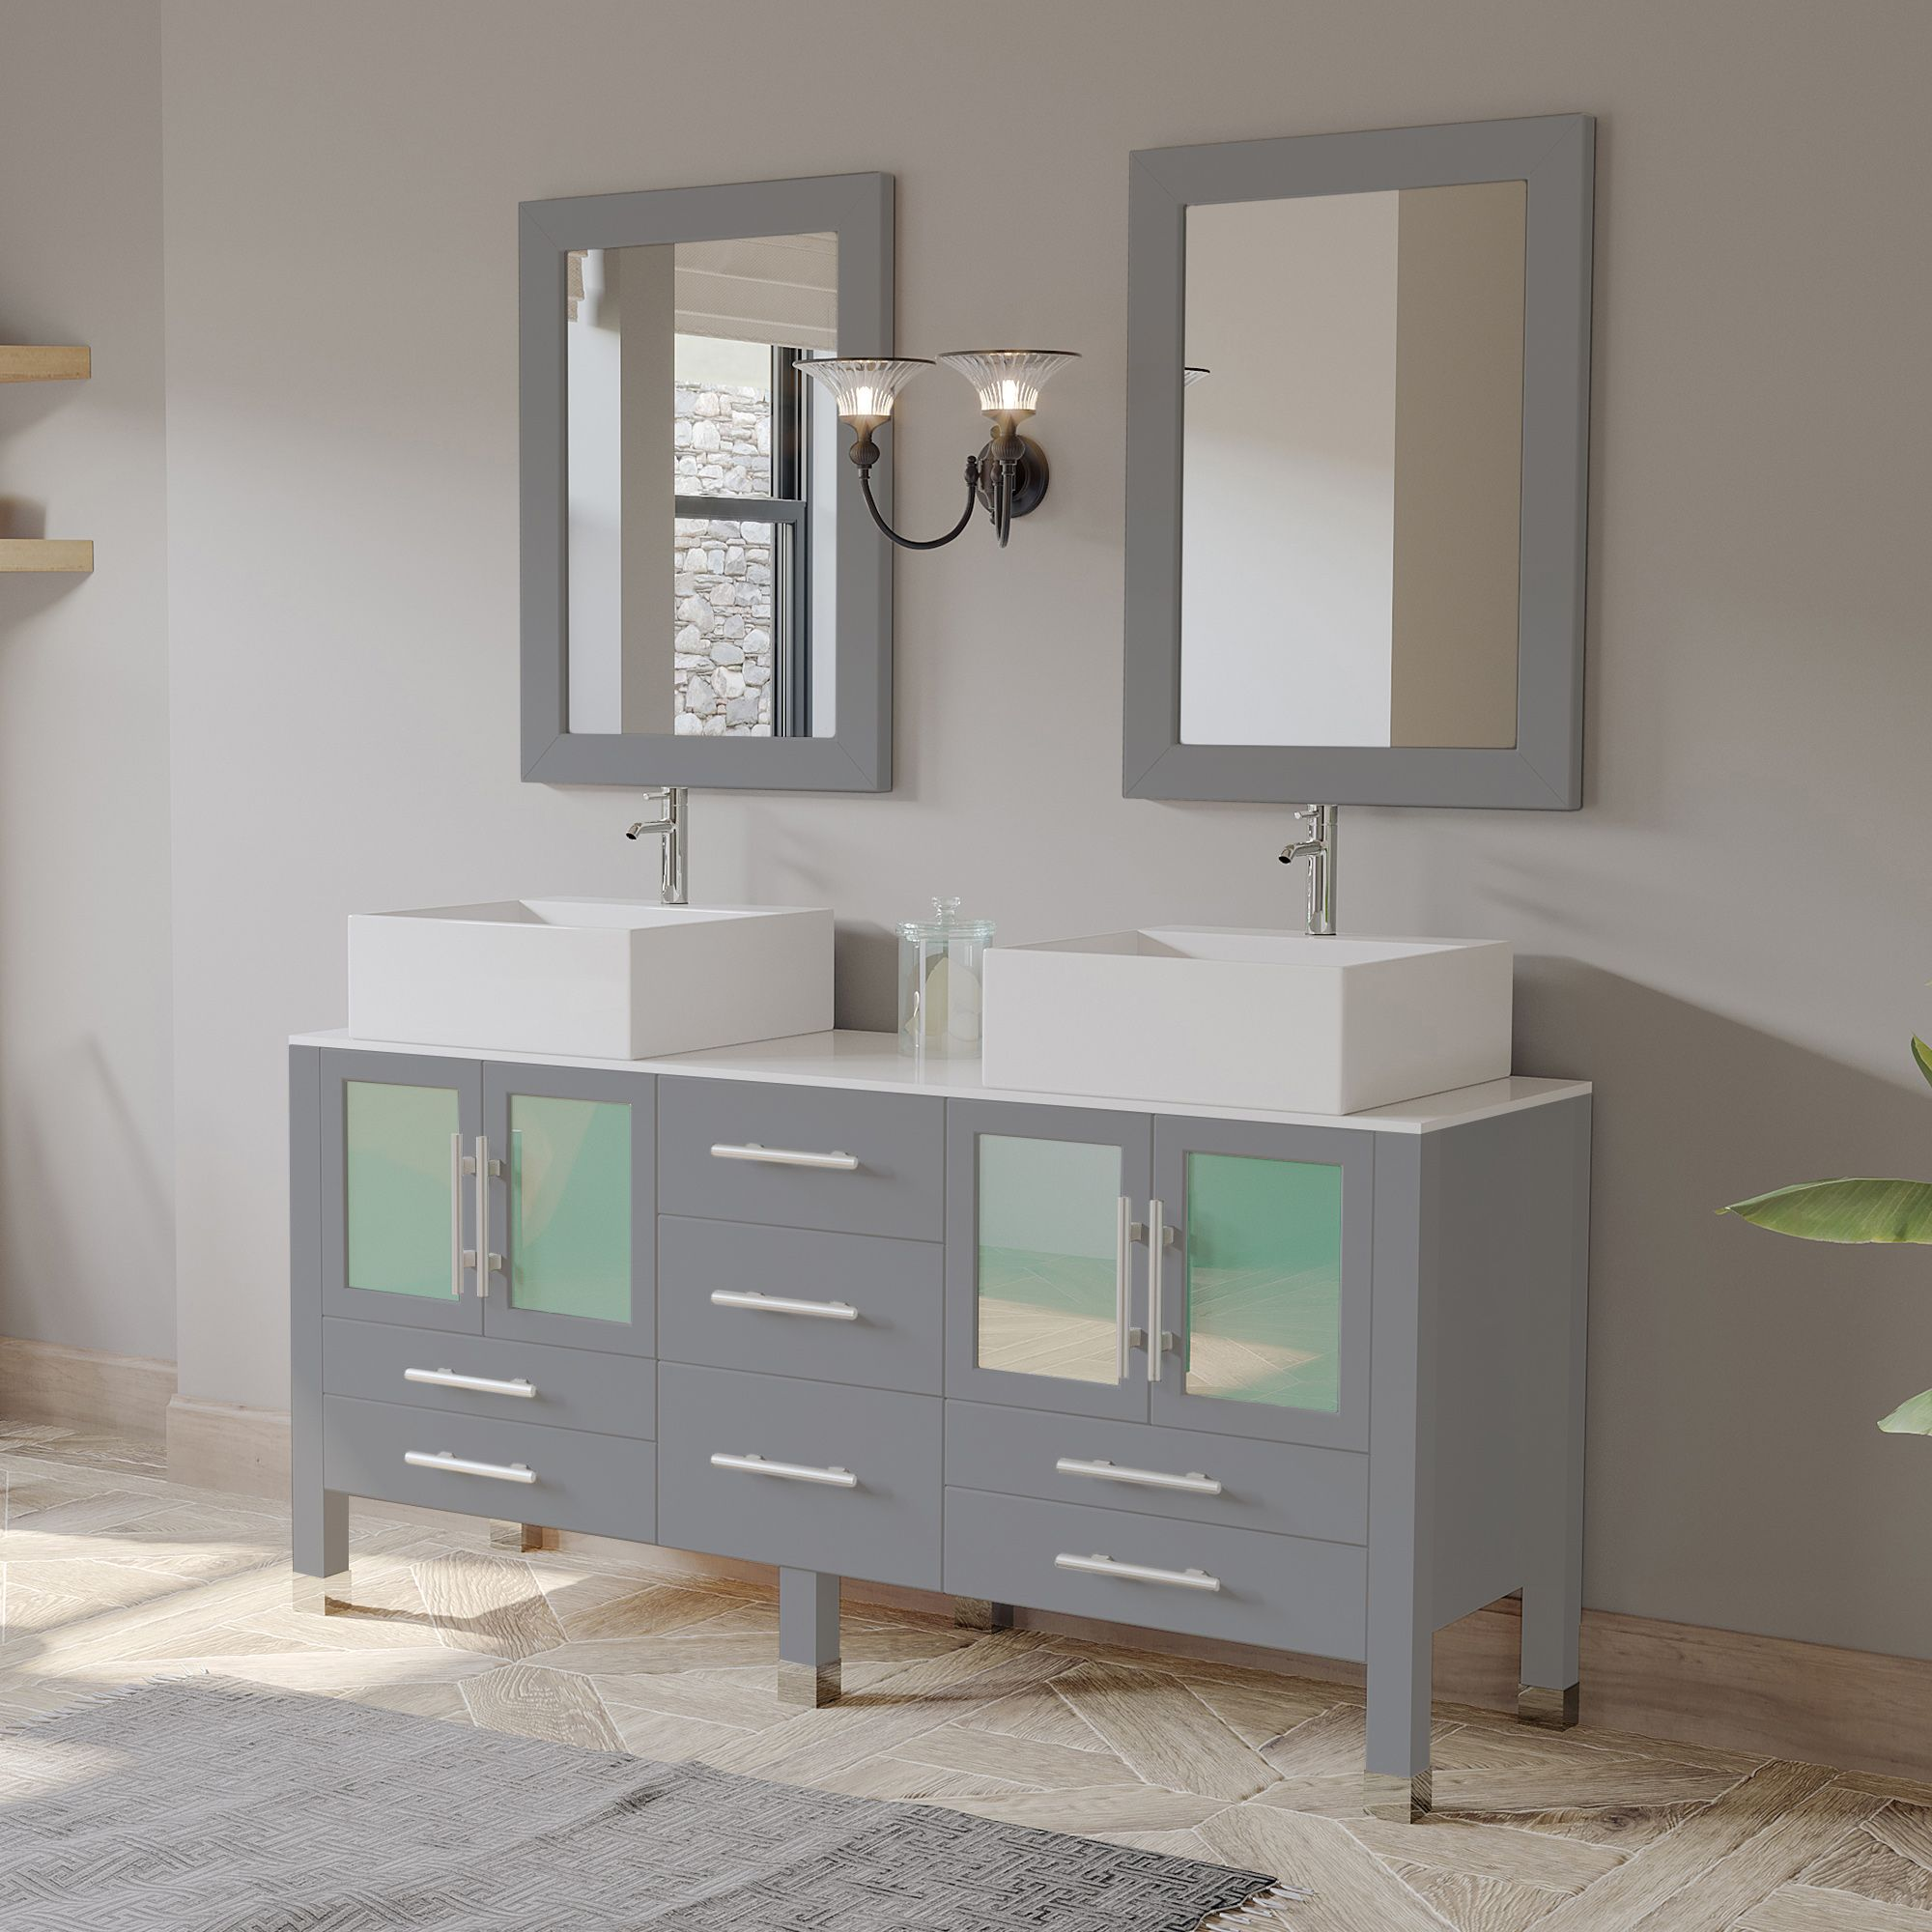 63 Contemporary Bathroom Vanity Bathroom Sink Vanity Modern Bathroom Decor